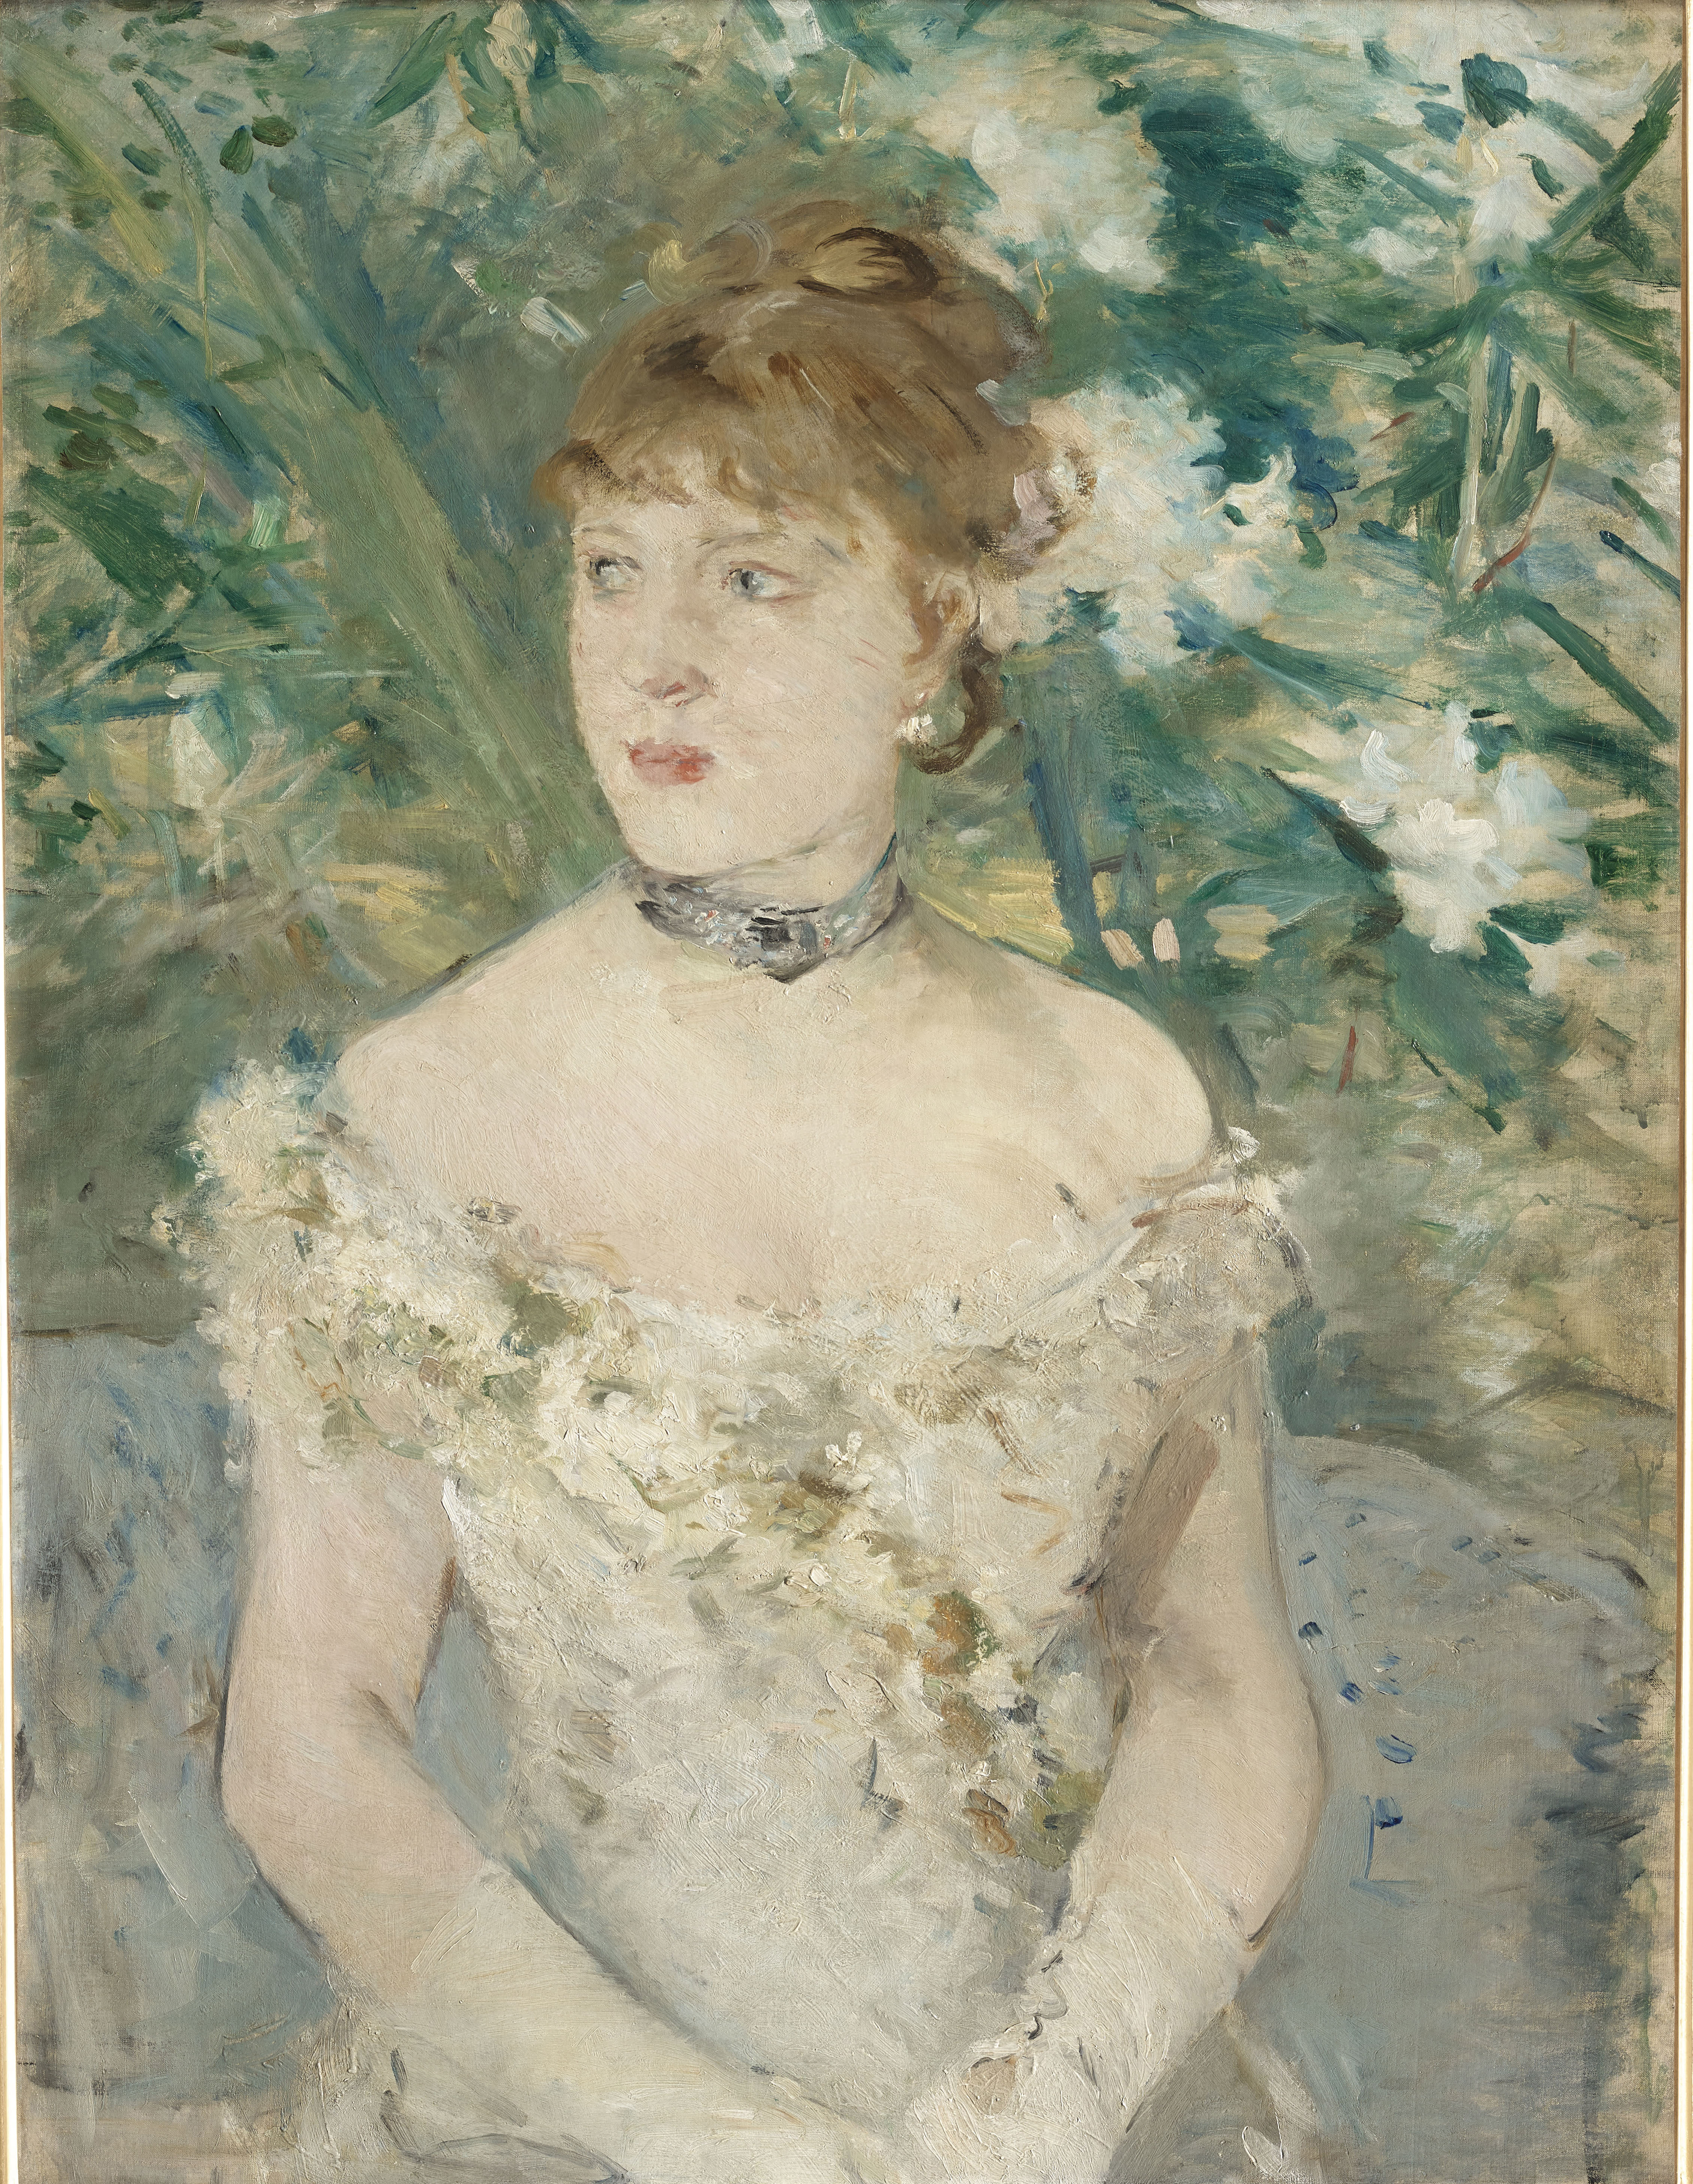 Vertical portrait of a young light-skinned woman, made with impressionistic visible brushstrokes. She is visible from the torso up. She wears a white, off the shoulders gown, a choker, and her hair is up. The background give the impression of a wall of fl